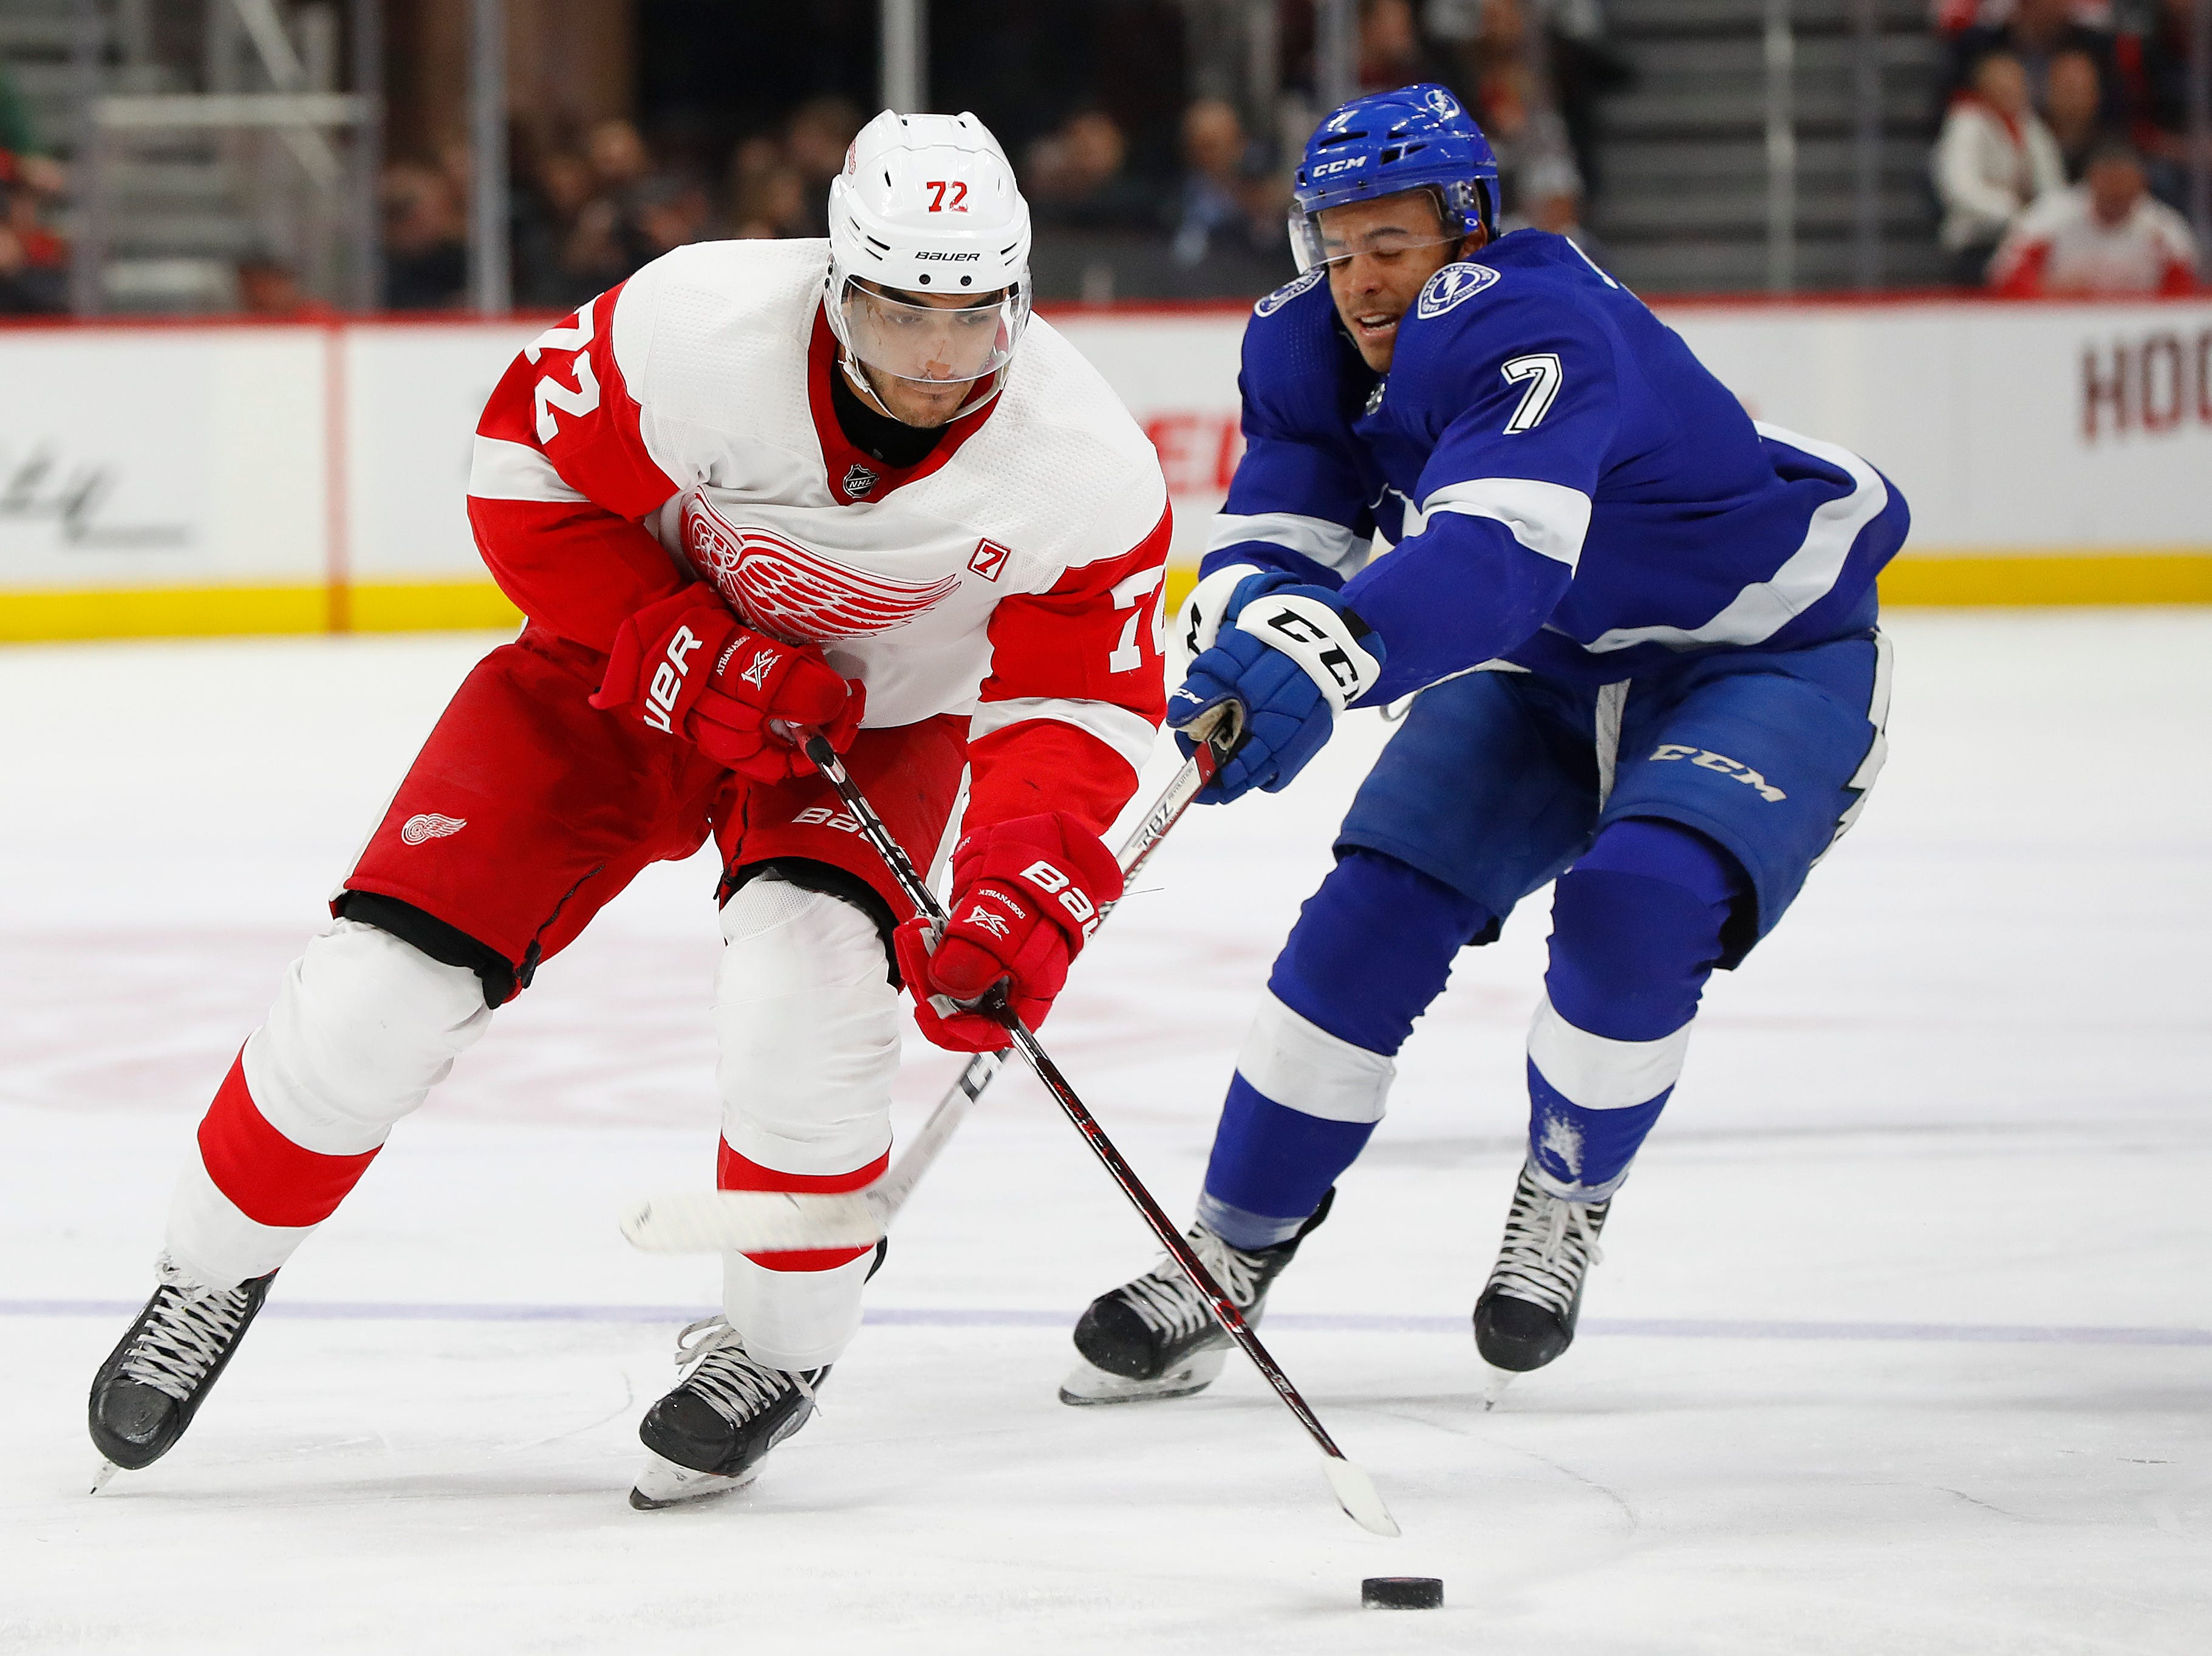 Detroit Red Wings center Andreas Athanasiou (72) skates with the puck as Tampa Bay Lightning's Mathieu Joseph (7) defends in the second period.